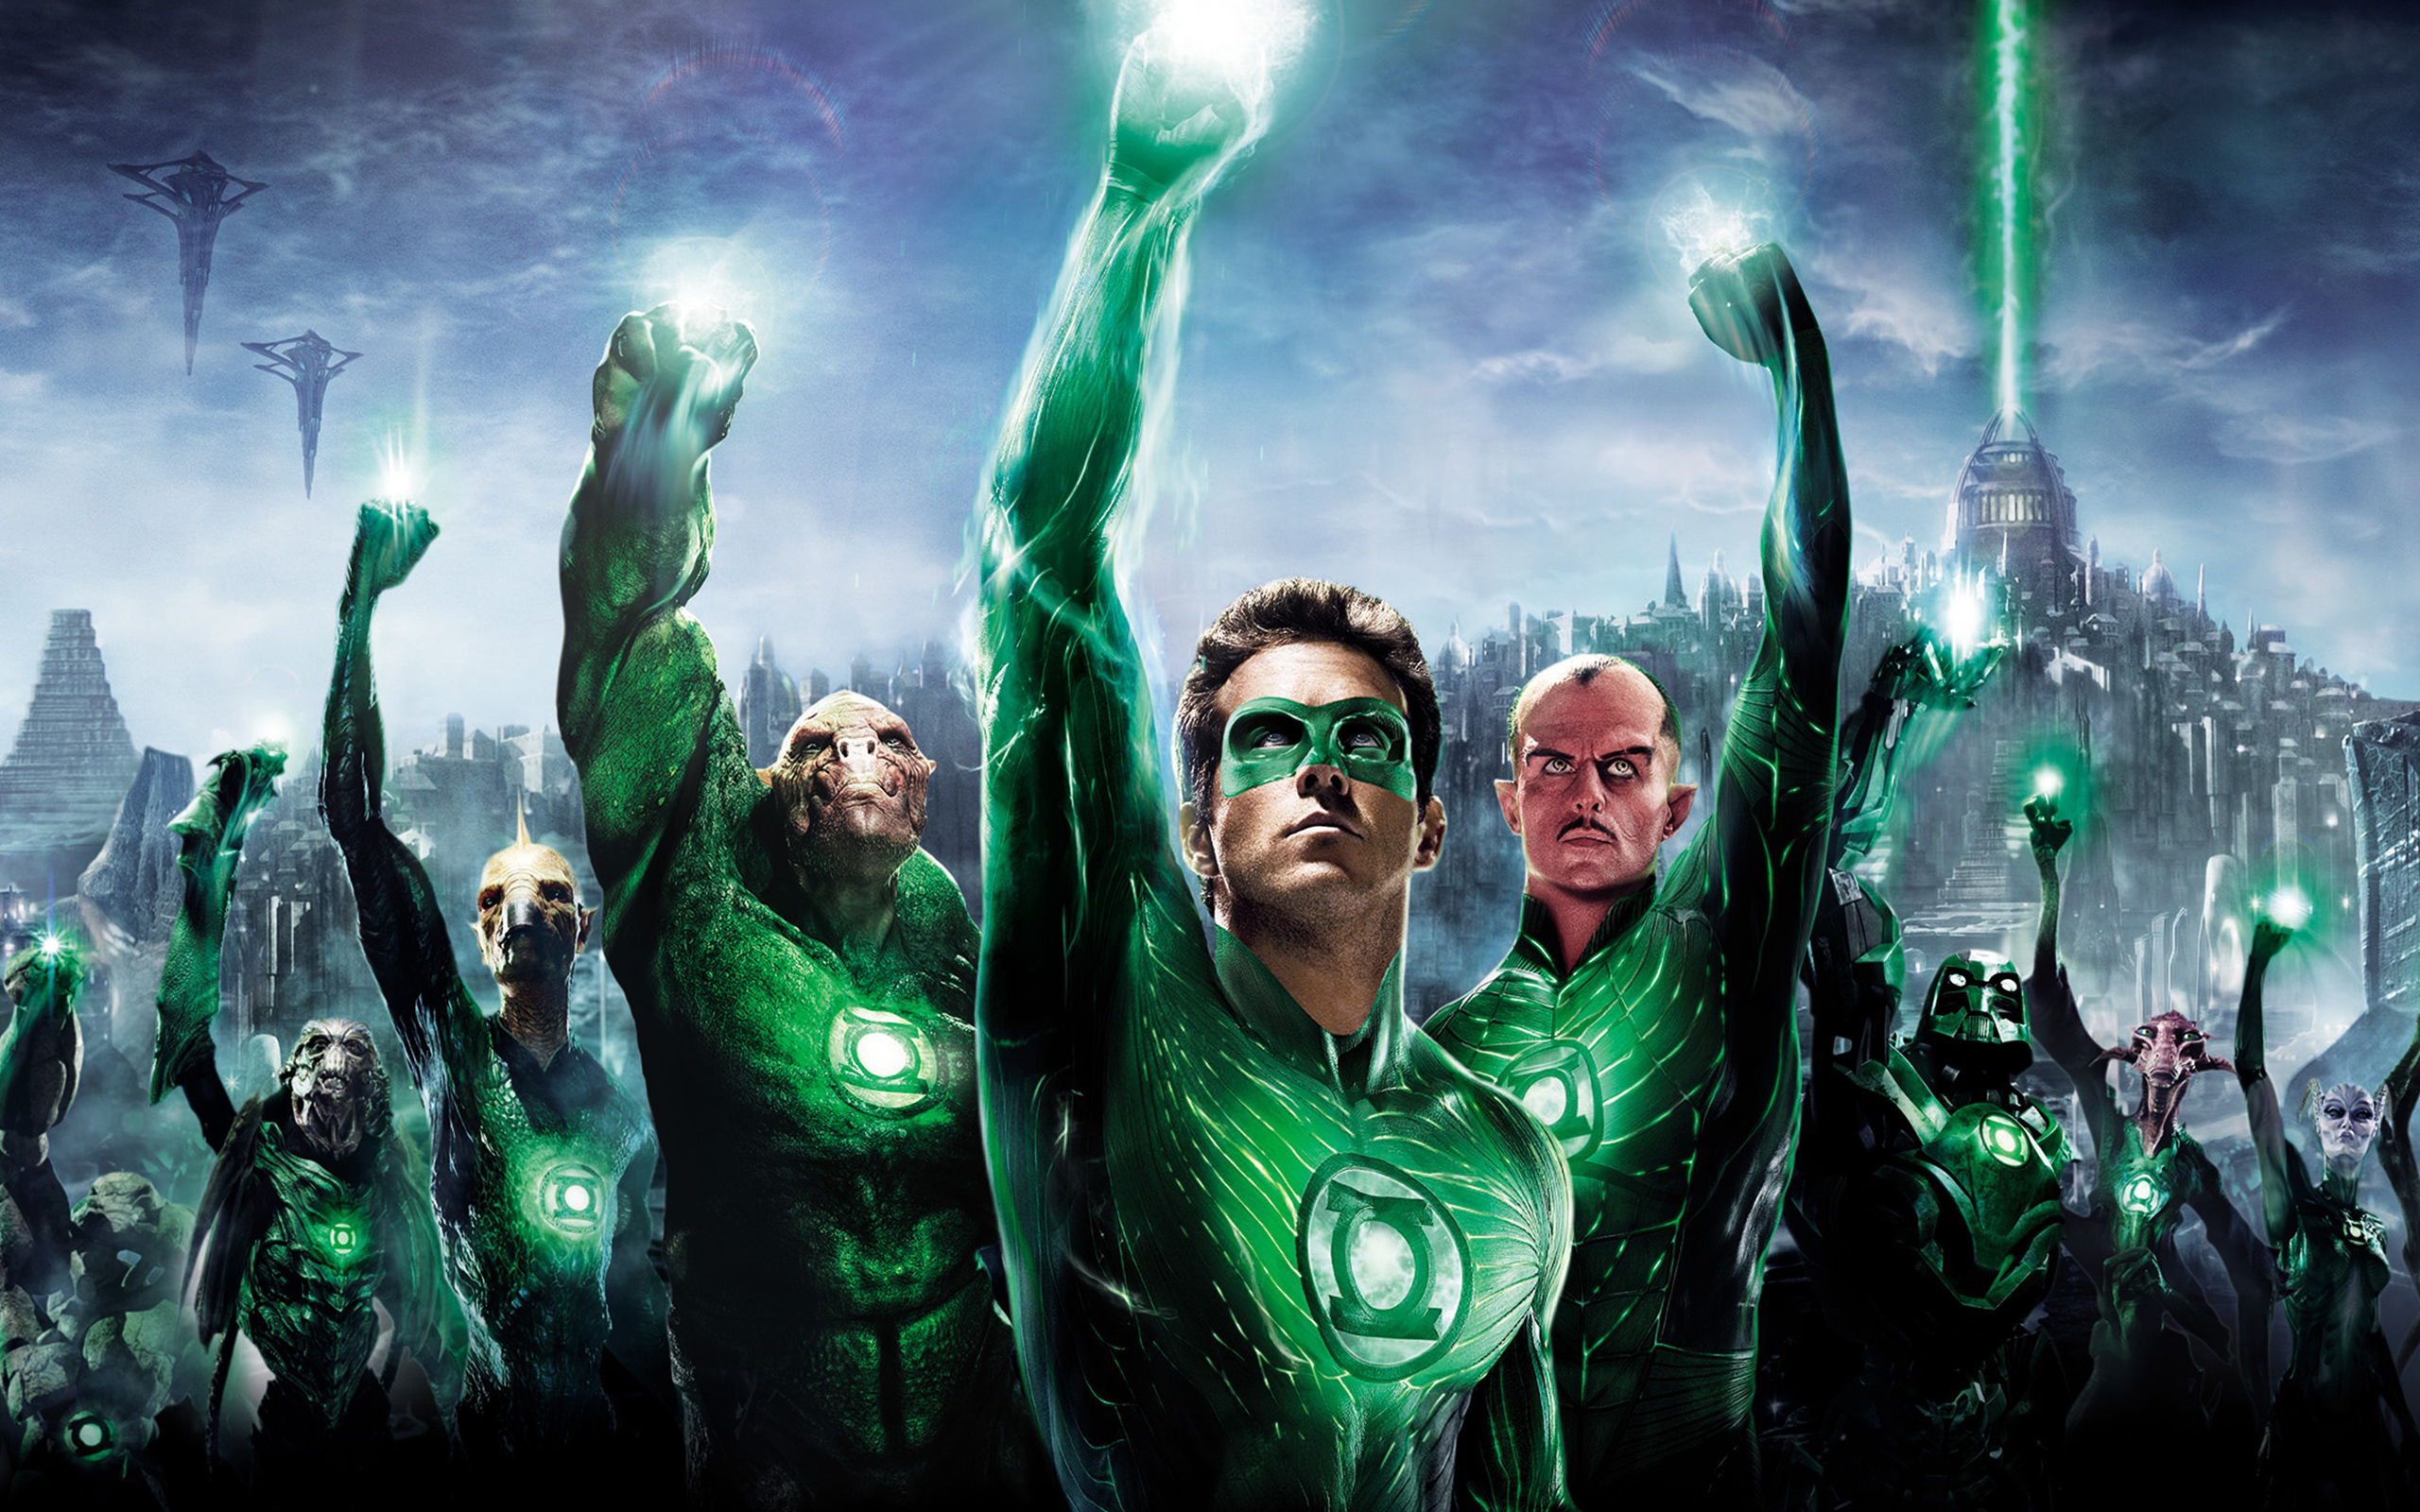 Green Lantern Wallpapers Best HD Desktop Wallpapers Widescreen 2560x1600